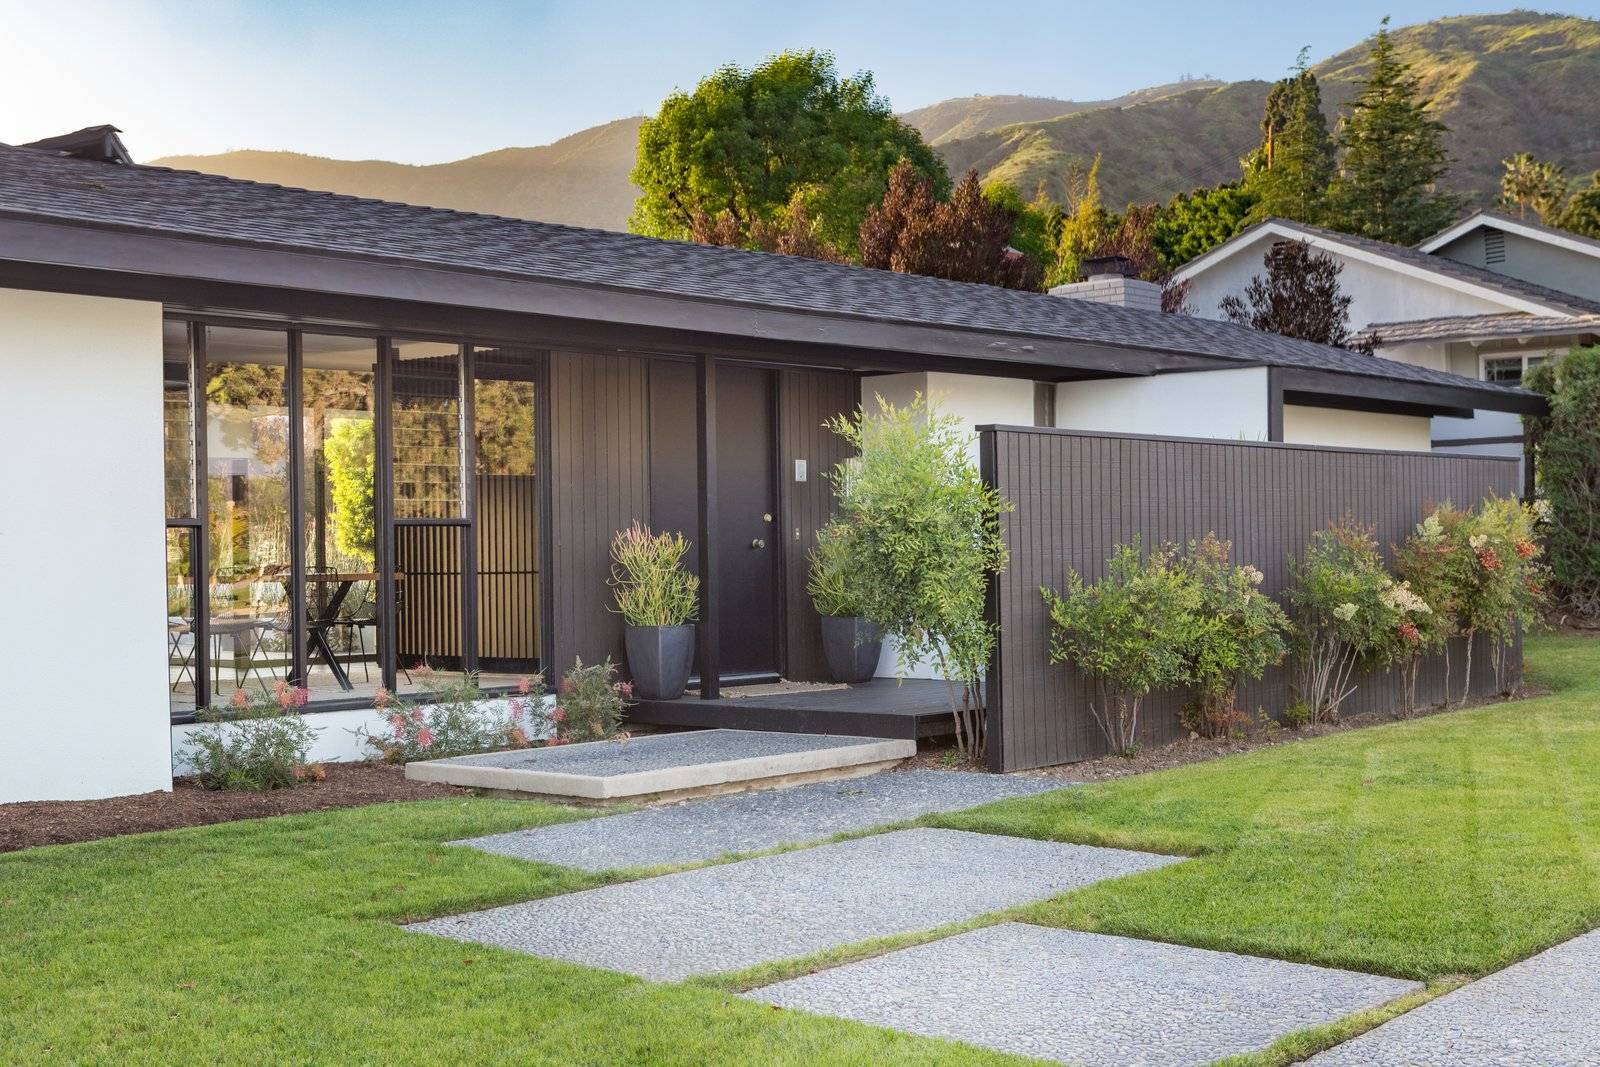 Tagged: Exterior, House, Shed RoofLine, and Shingles Roof Material.  Photo 11 of 14 in Offered at $899K, a Restored Midcentury Abode Shines in Southern California